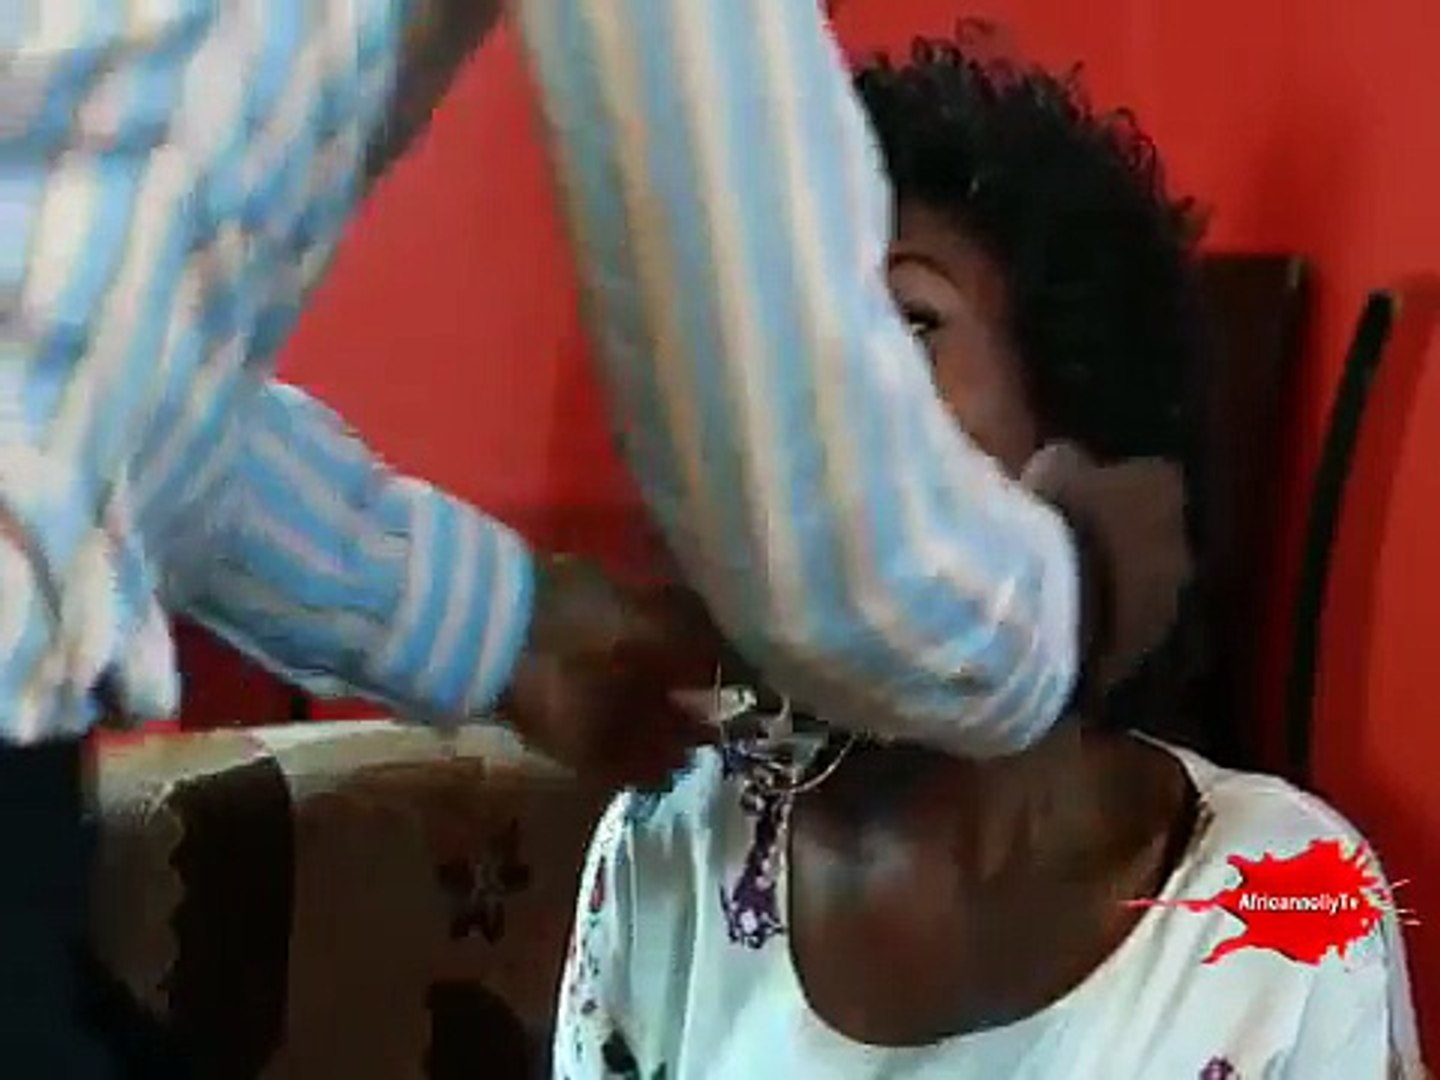 HUSBAND SNATCHERS PART 2A - LATEST NOLLYWOOD/GHALLYWOOD MOVIES